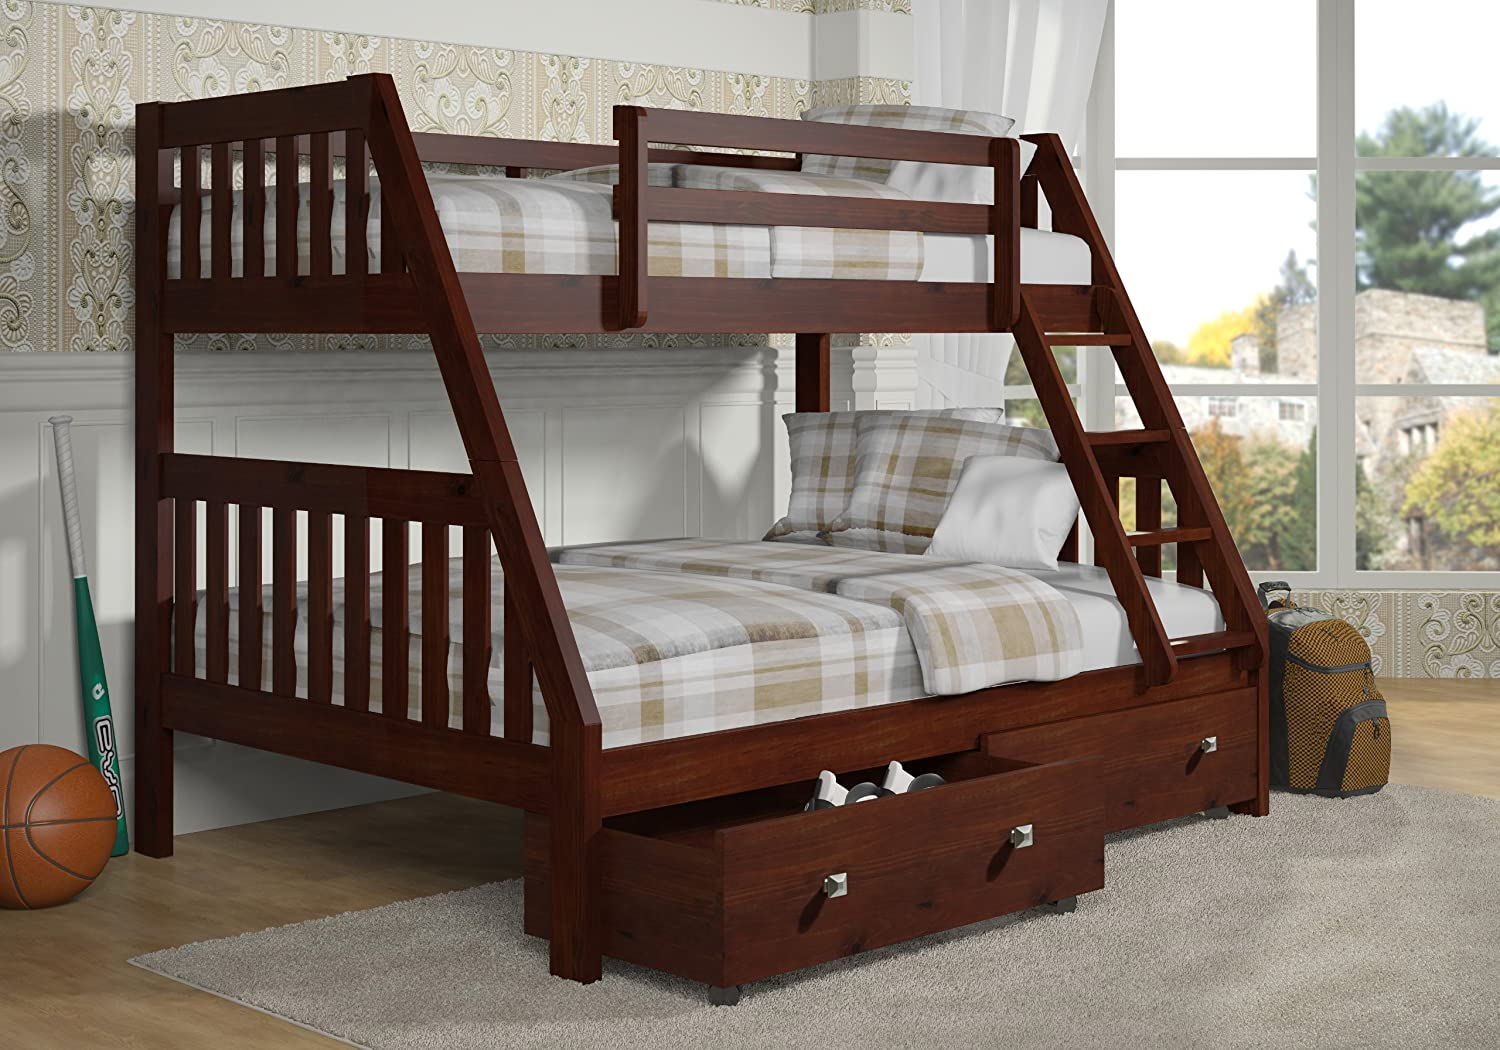 Amazoncom Bunk Bed Twin over Full Mission StyleDark Cappuccino